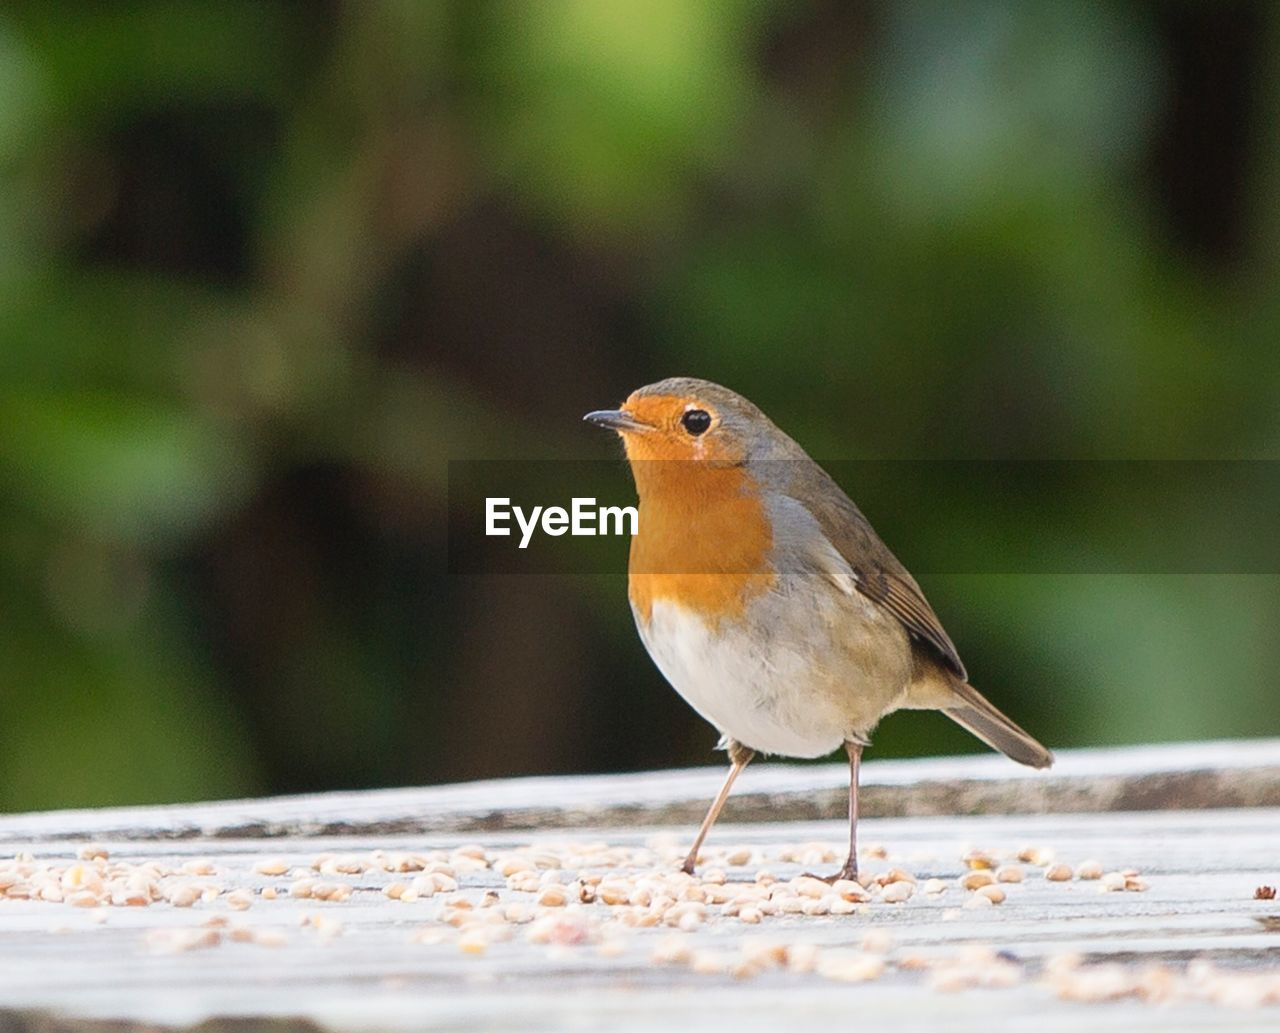 one animal, bird, animals in the wild, animal themes, robin, animal wildlife, perching, focus on foreground, day, close-up, nature, outdoors, no people, beauty in nature